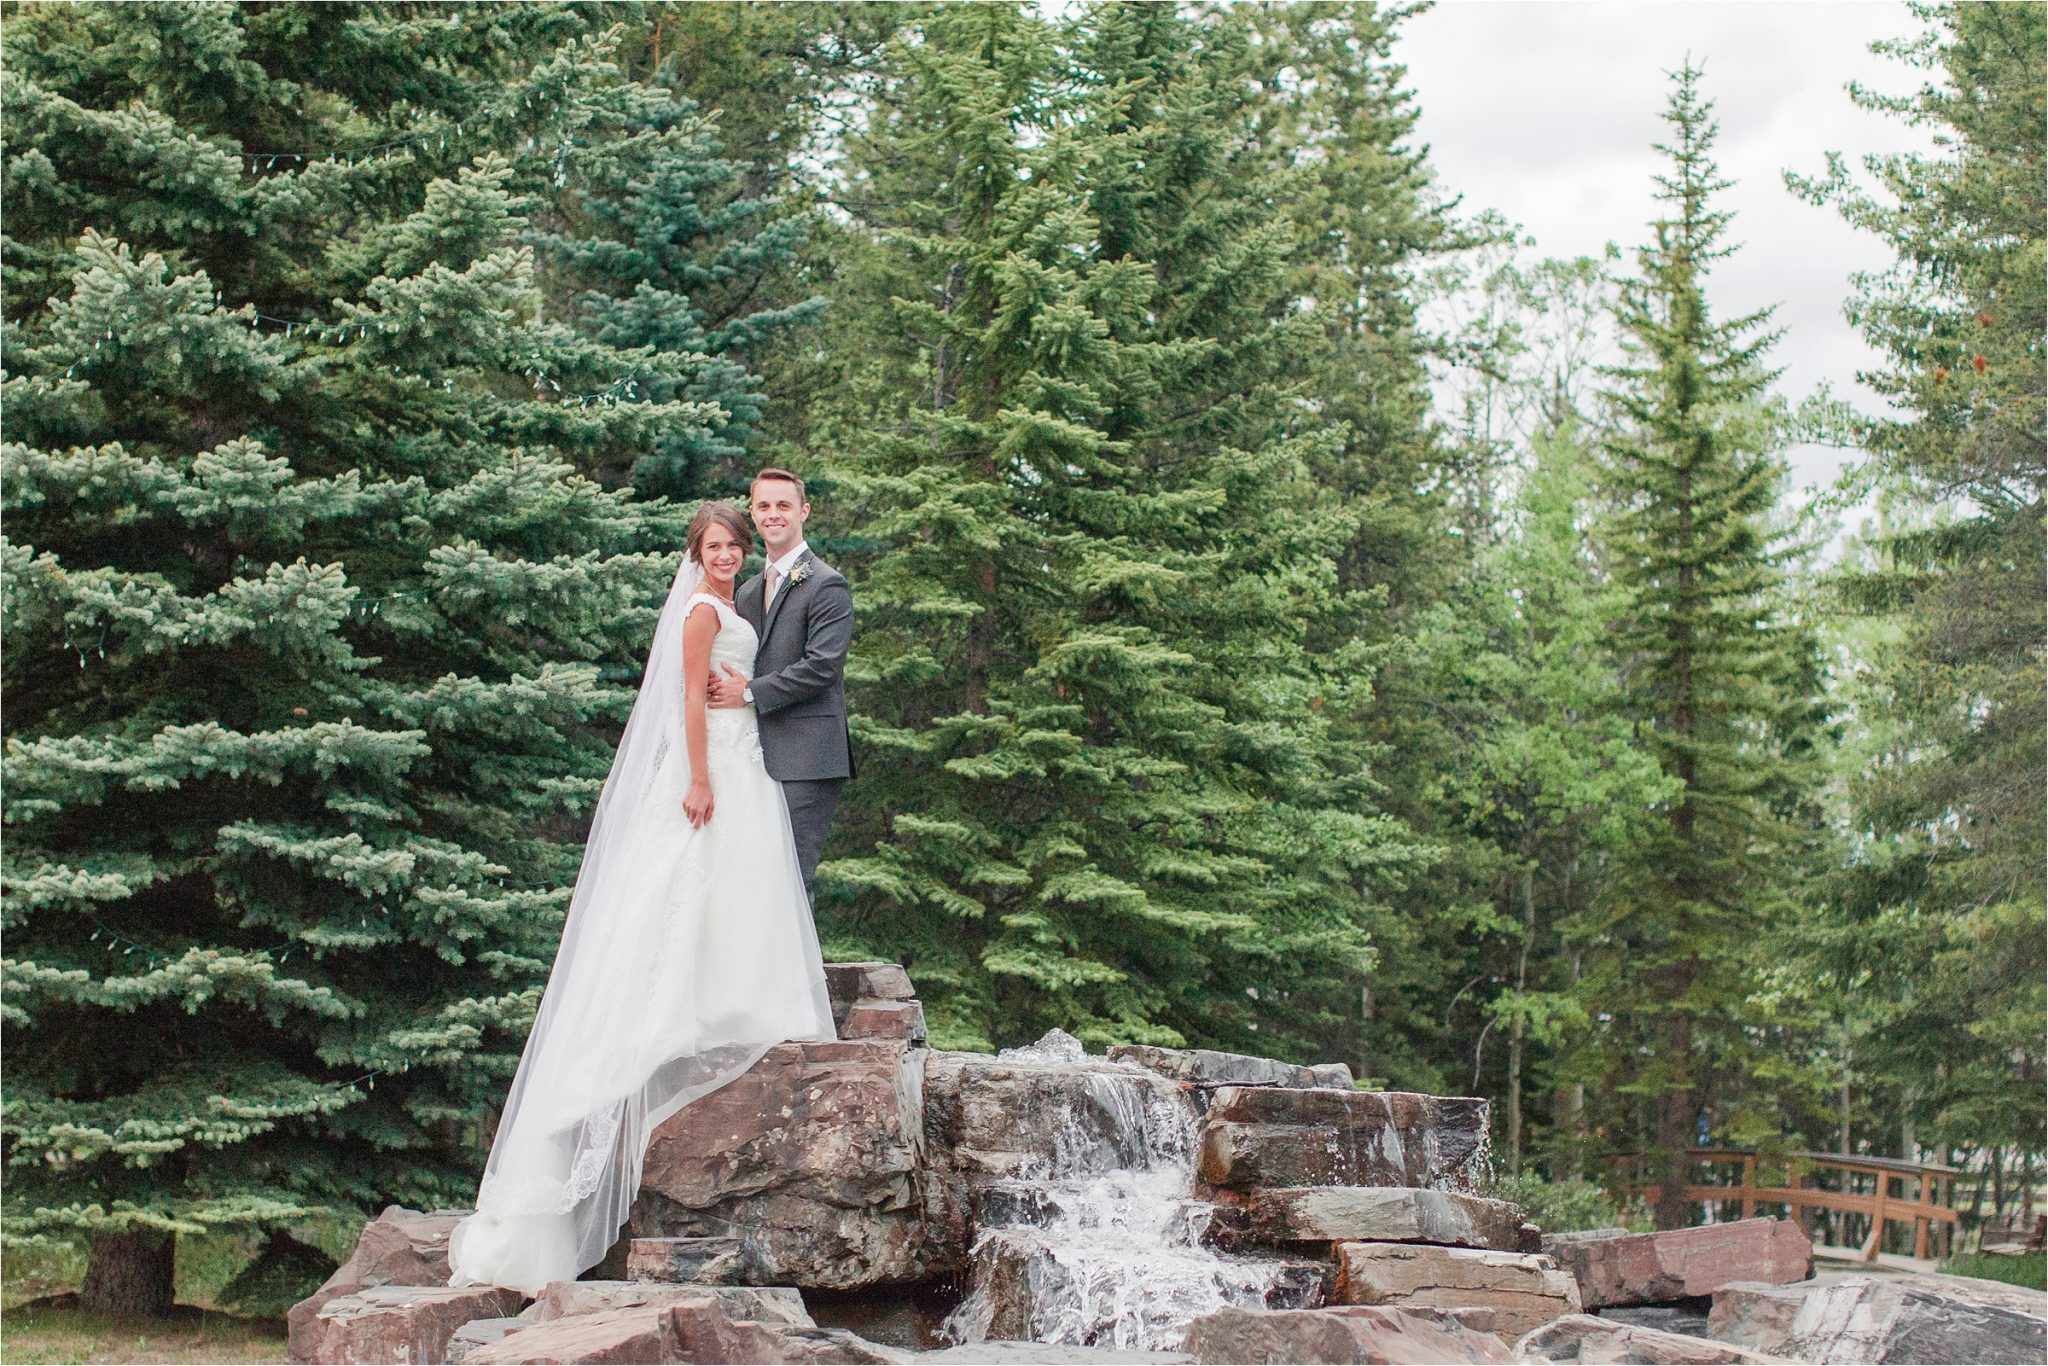 Kananaskis Canada Wedding at the Delta Lodge